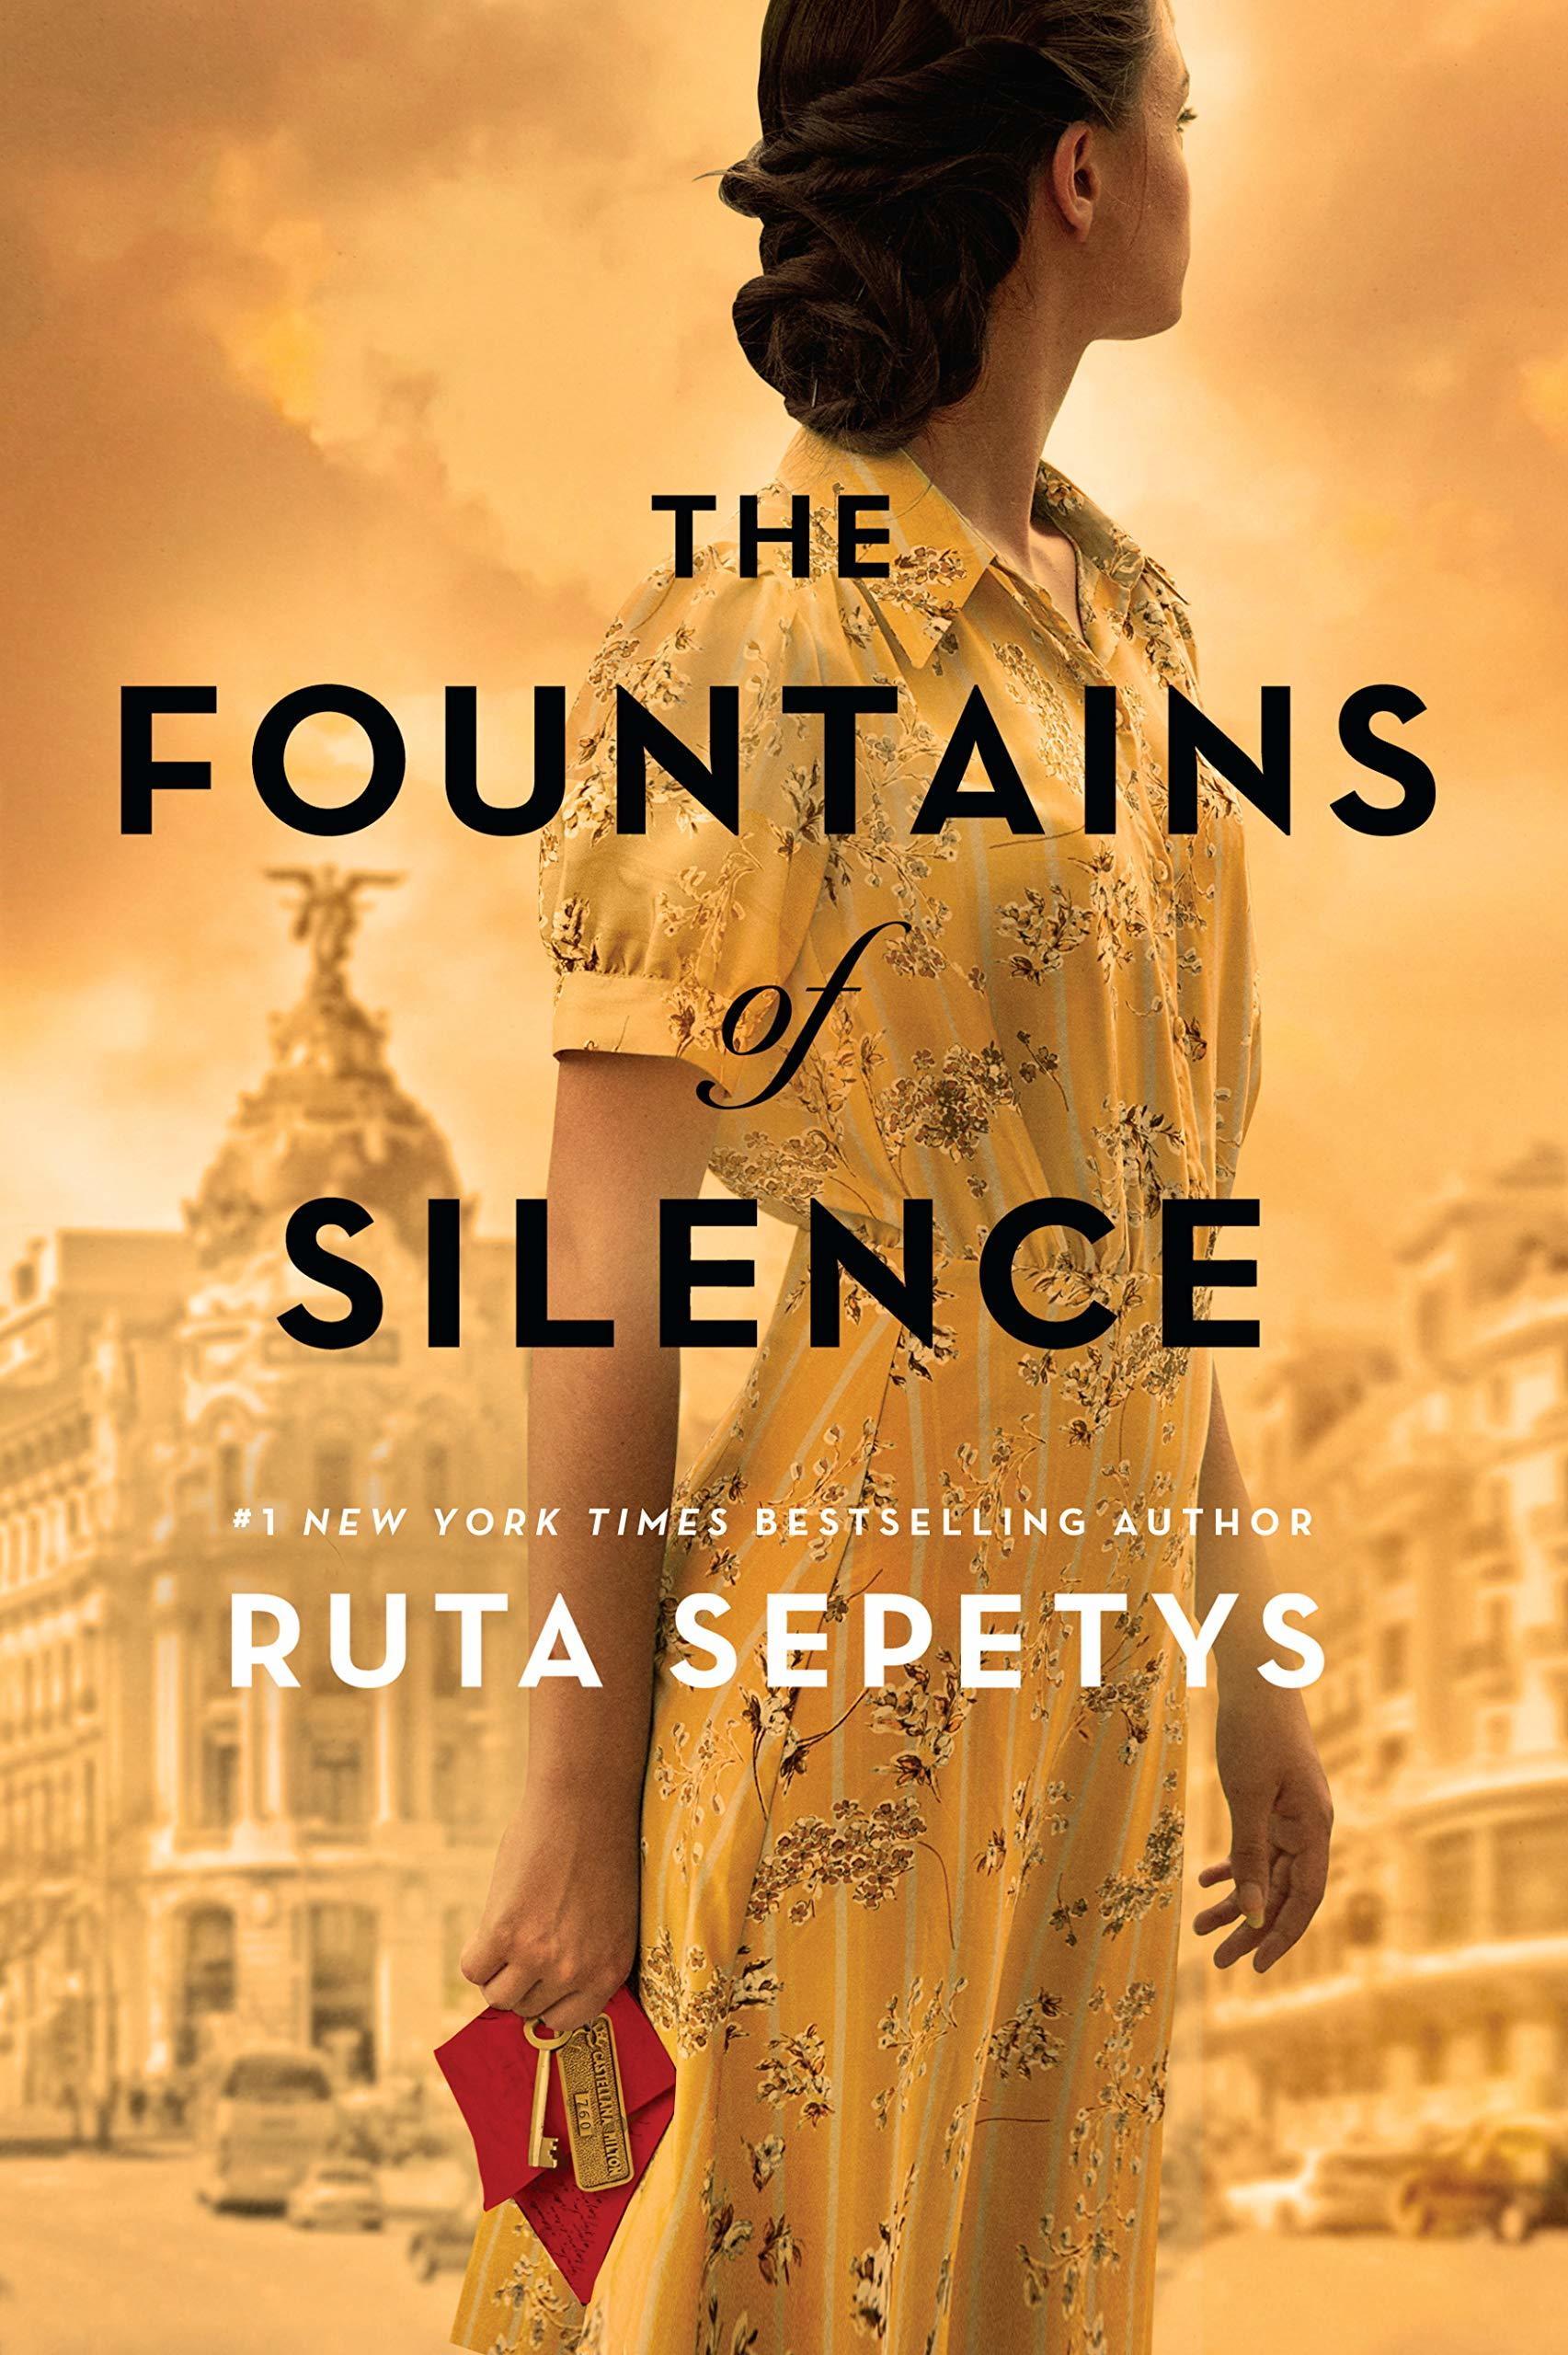 cover of The Fountains of Silence by Ruta Sepetys with girl's face turned away in yellow dress holding a hotel key and red envelope